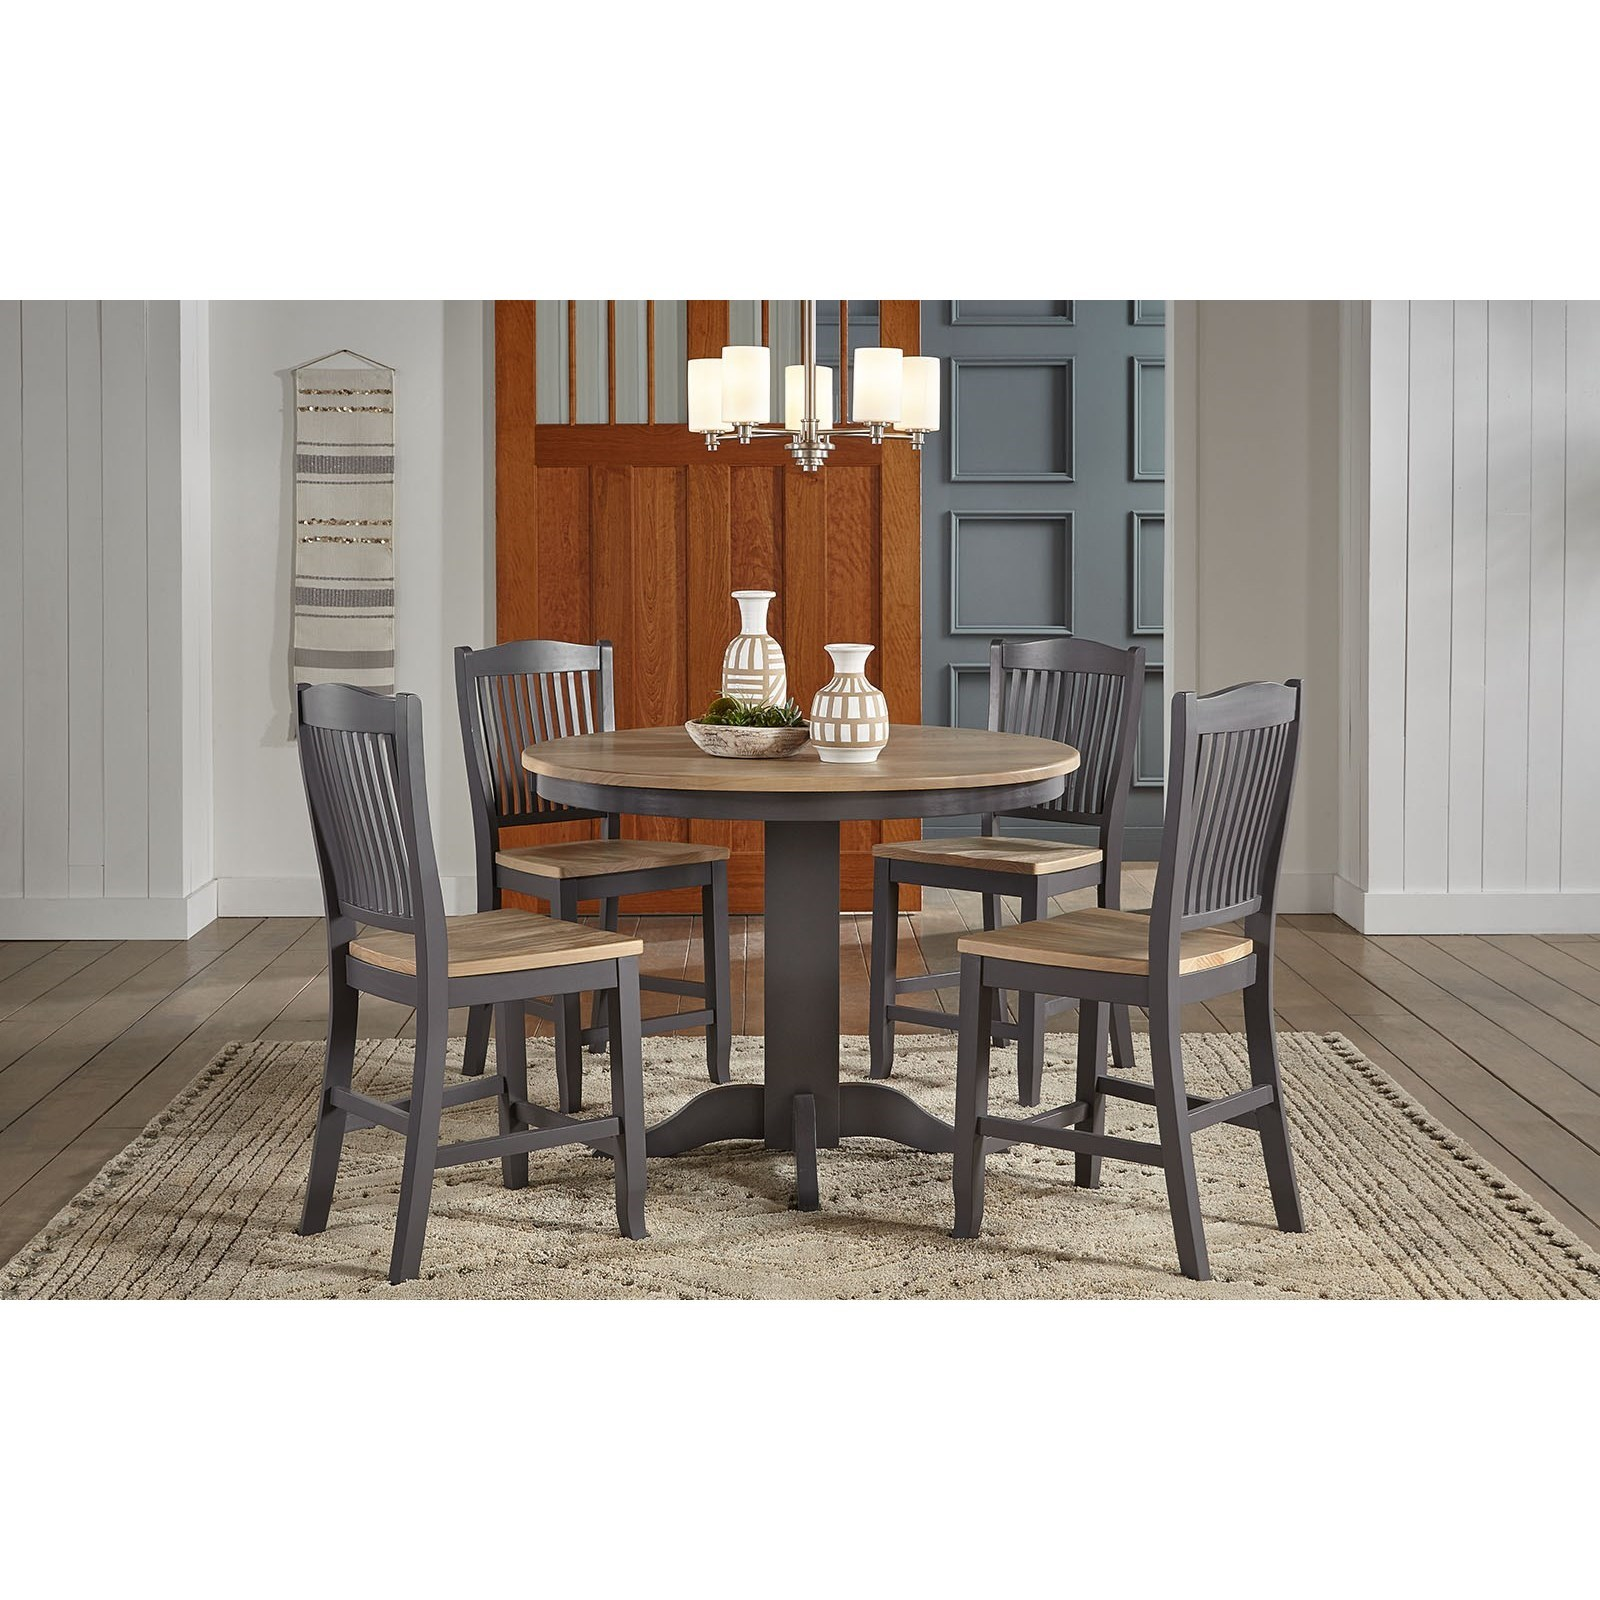 Port Townsend 5-Piece Round Gathering Table and Chair Set by AAmerica at Dinette Depot